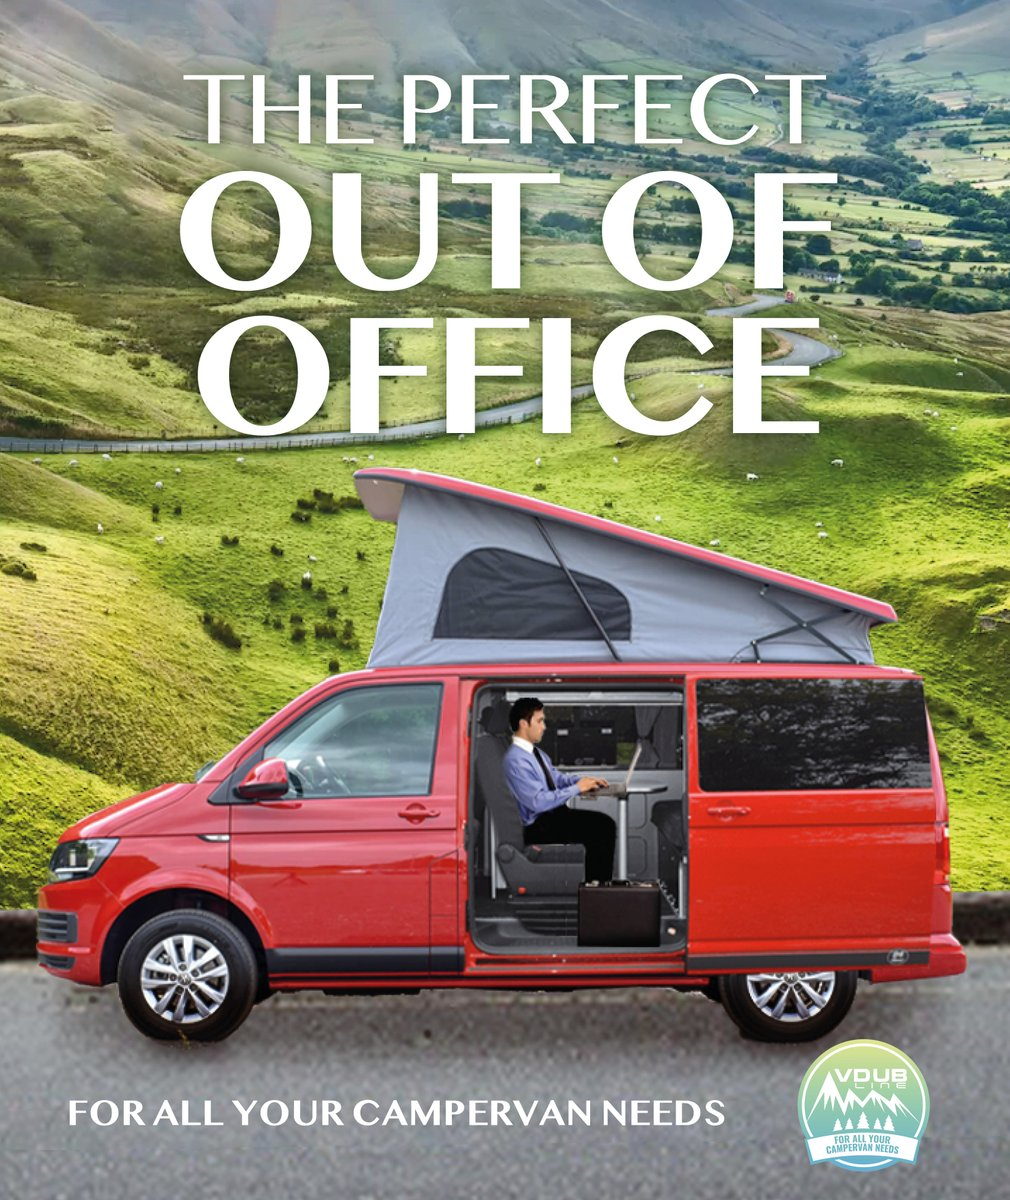 The perfect Out of Office #creative #advertising #officelife #staycation #campervanlife #OutofOffice  @OneMinuteBriefs of the Day:  Create posters to advertise @Vdubline #Campervans.